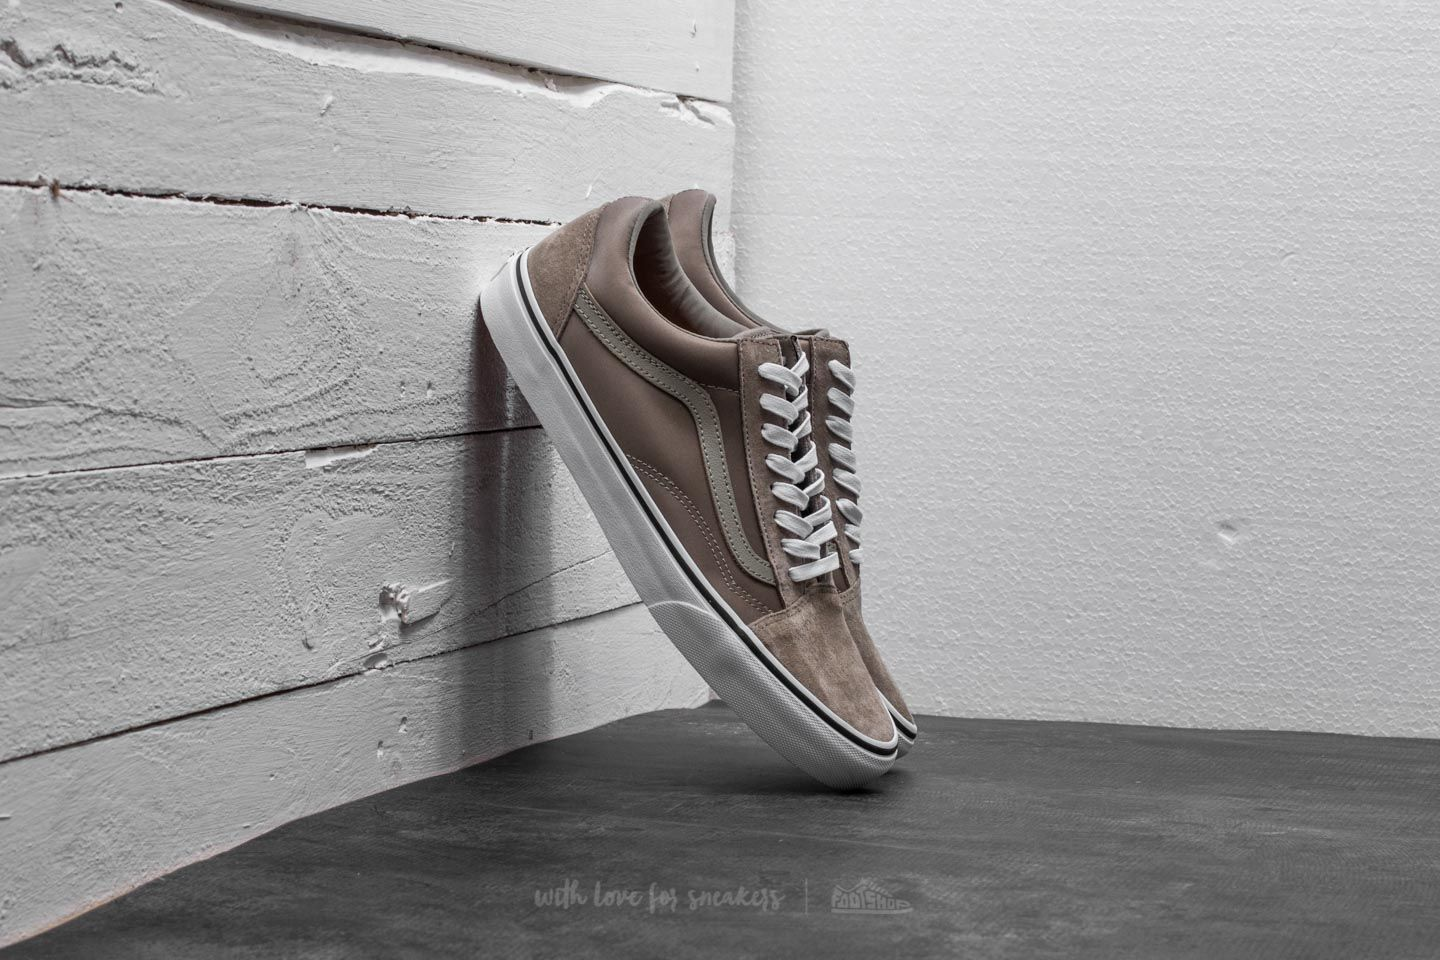 vans old skool boom boom